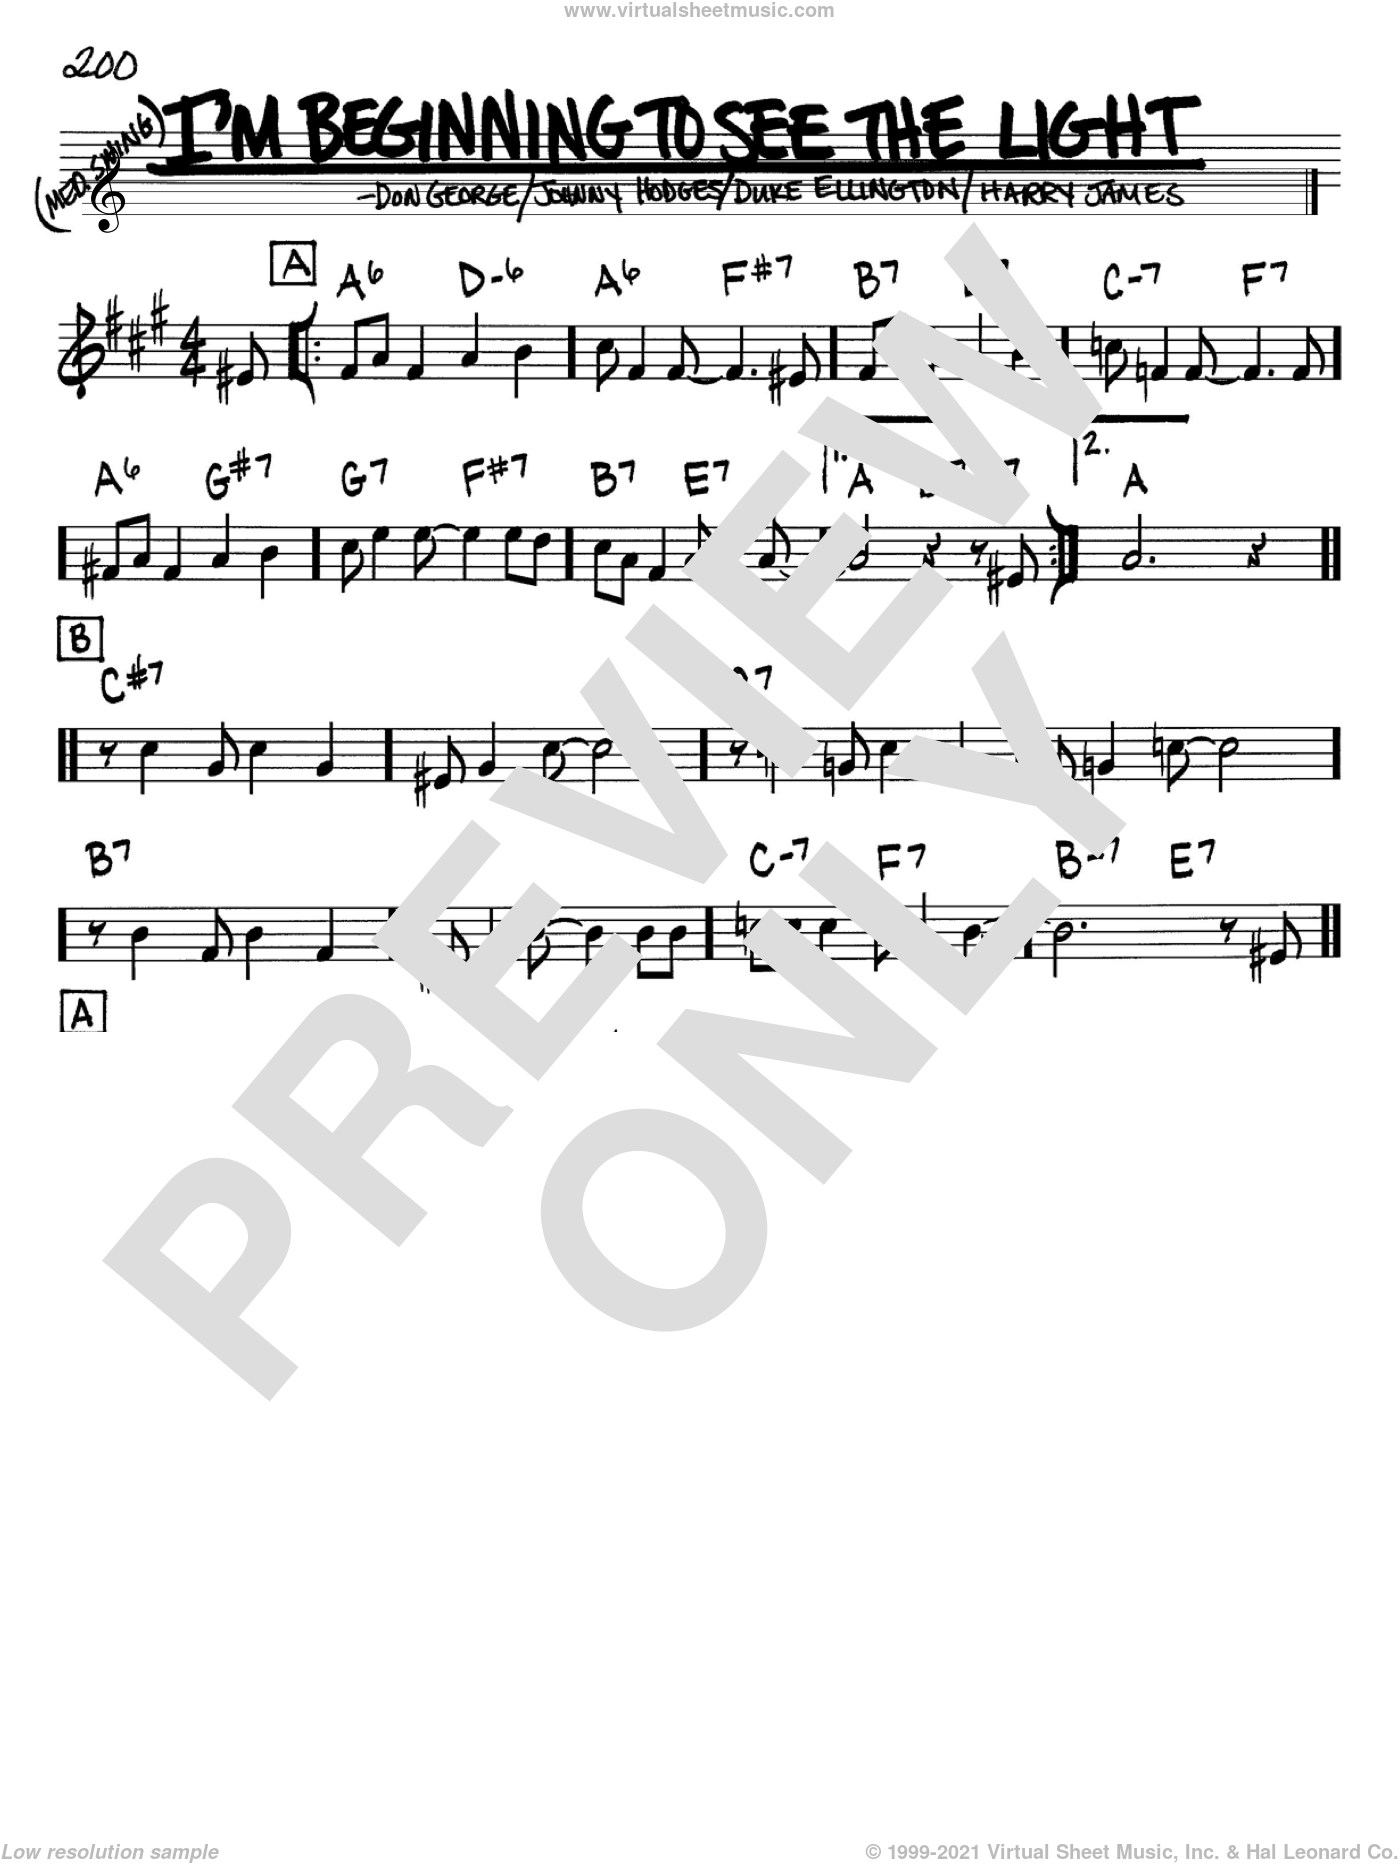 I'm Beginning To See The Light sheet music for voice and other instruments (Bb) by Johnny Hodges, Don George, Duke Ellington and Harry James. Score Image Preview.